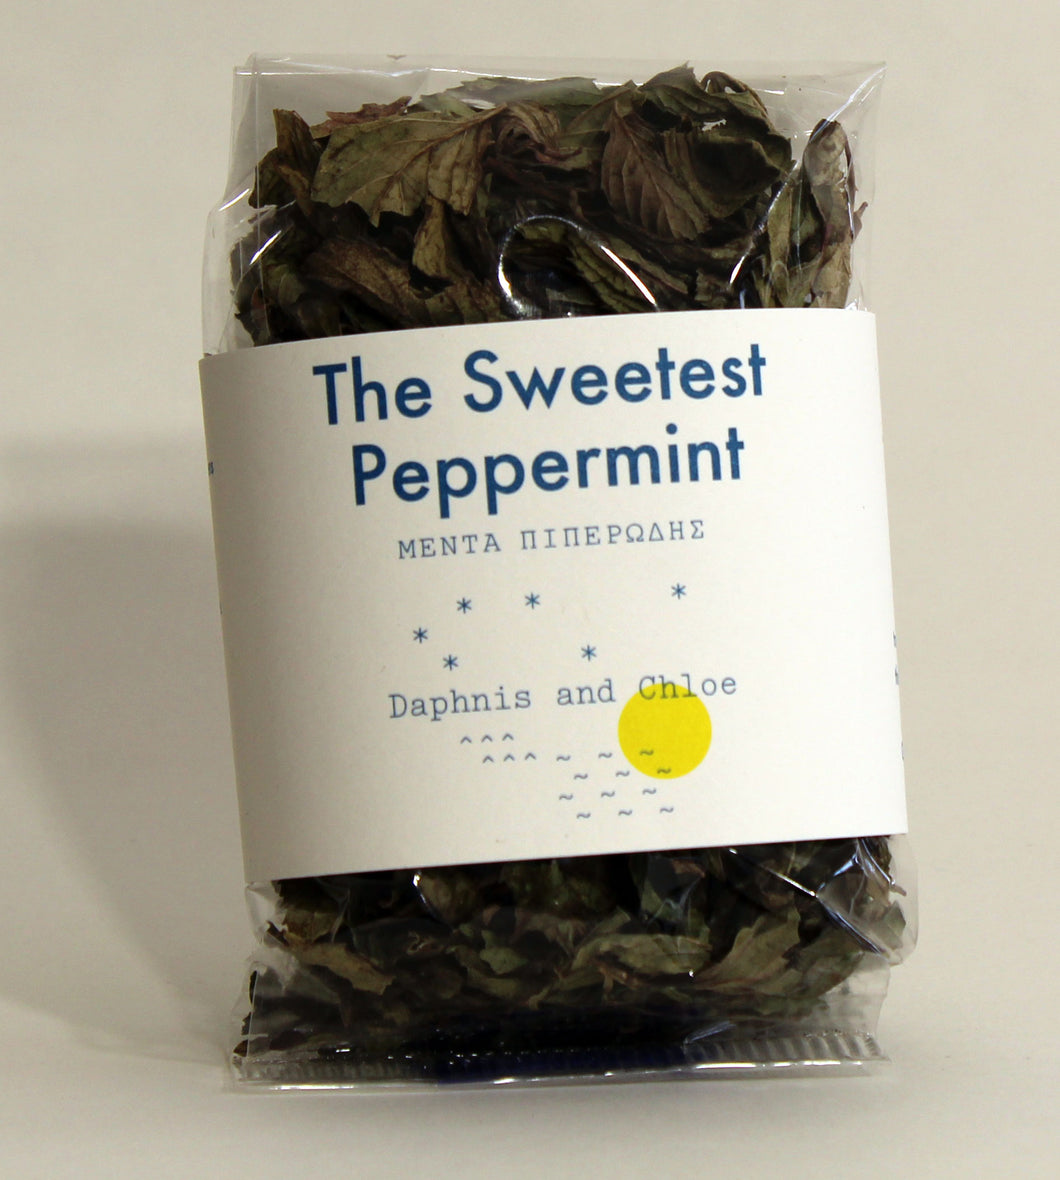 Peppermint bags